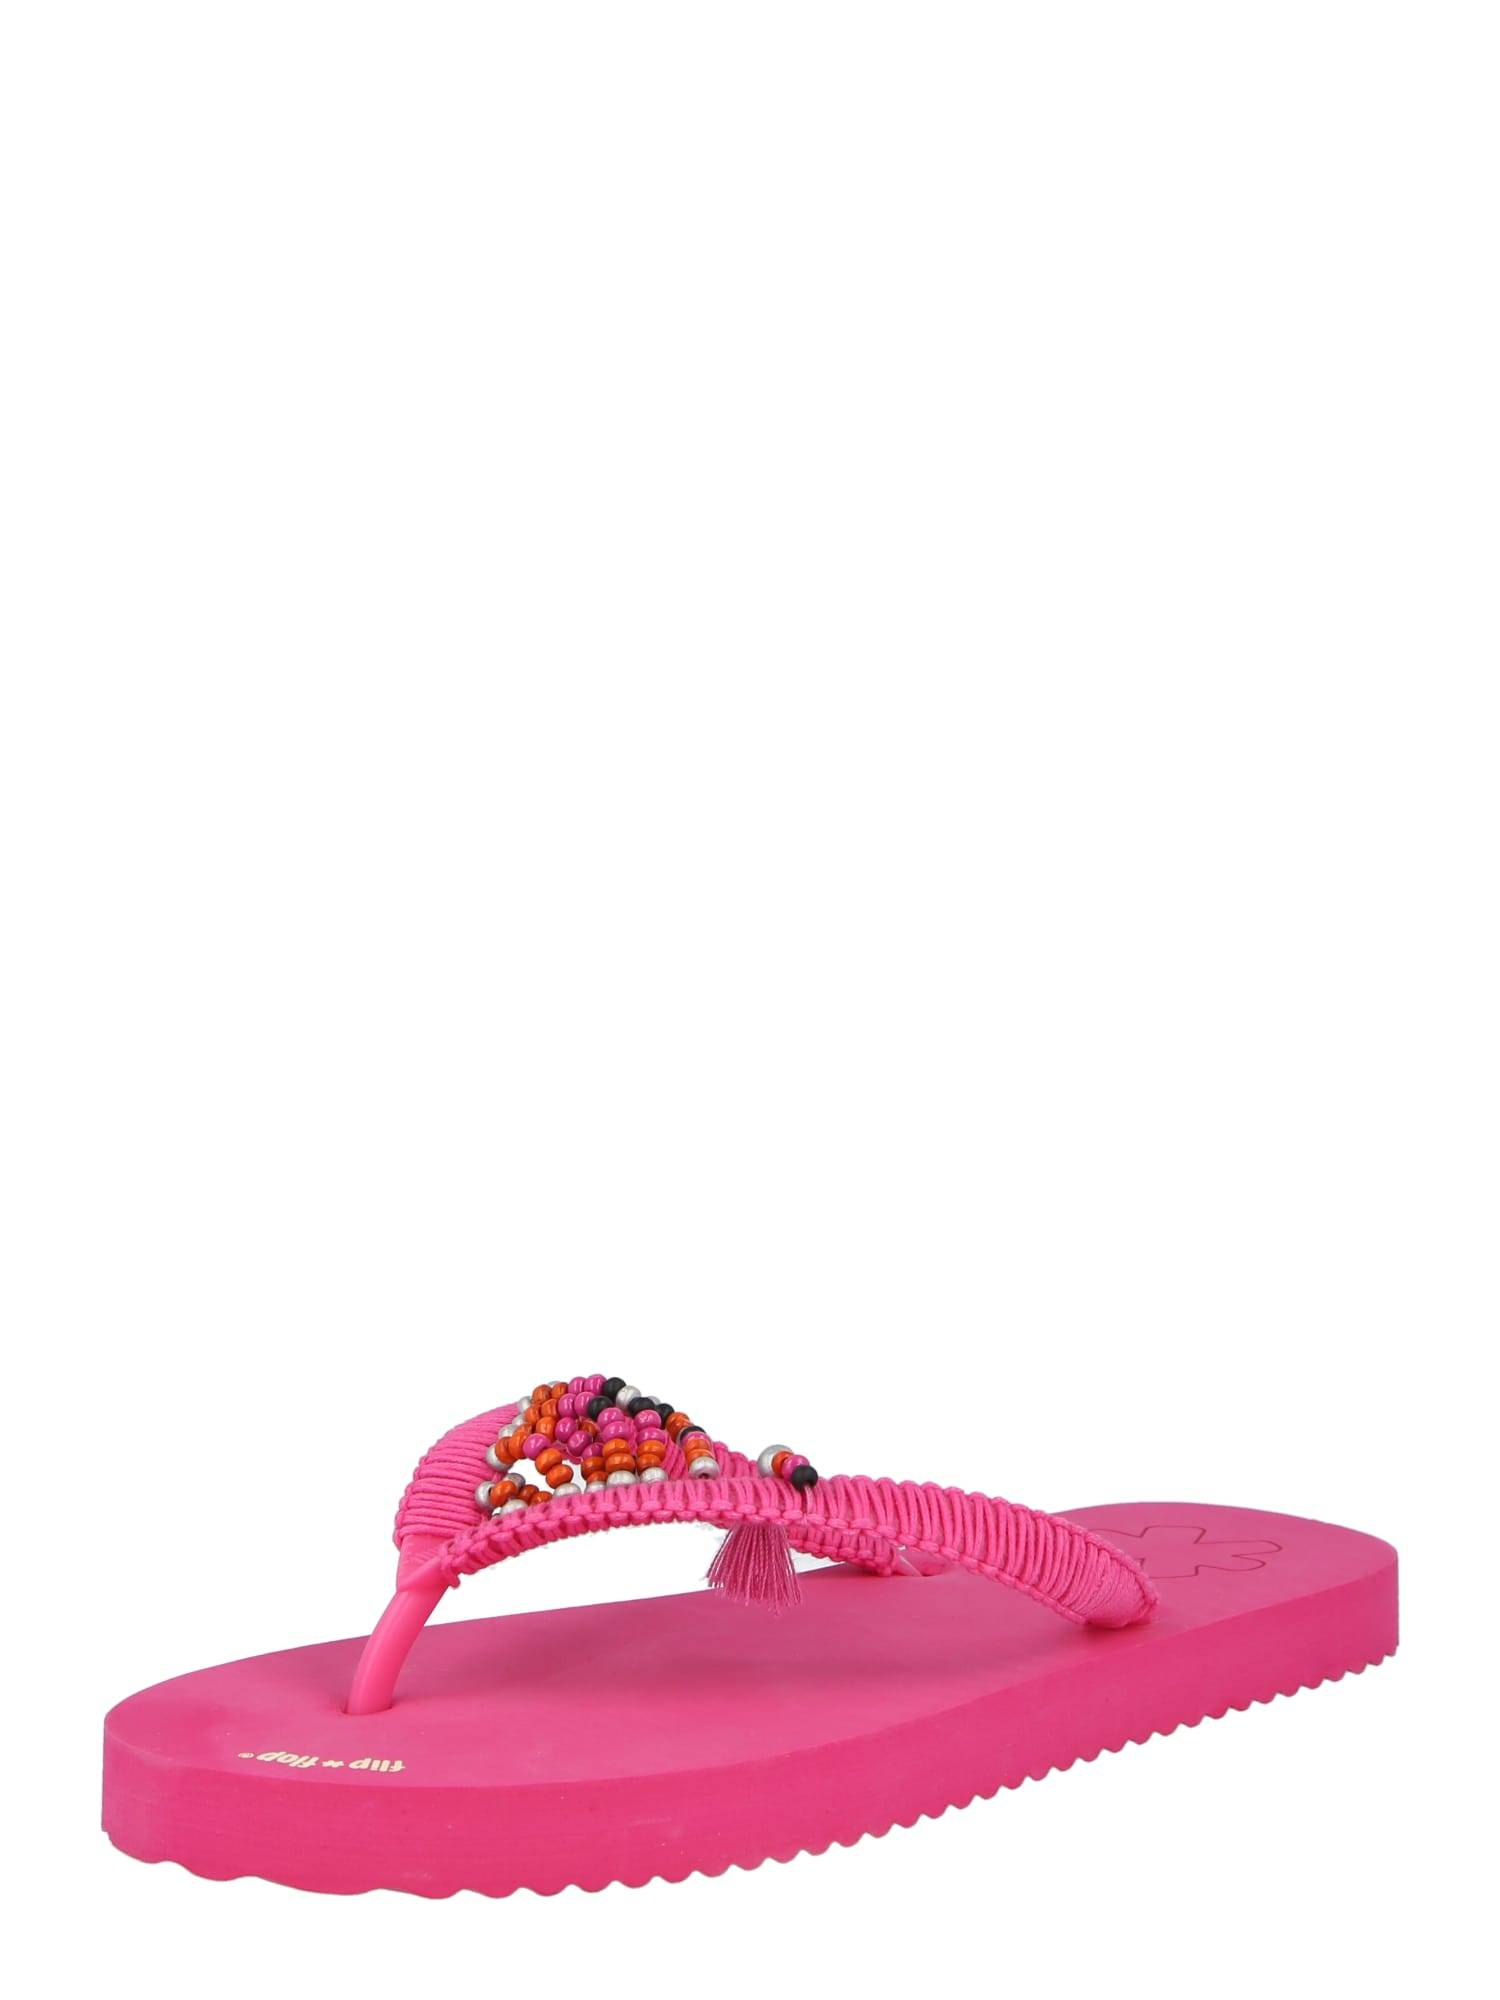 FLIP*FLOP Tongs  - Rose - Taille: 36 - female